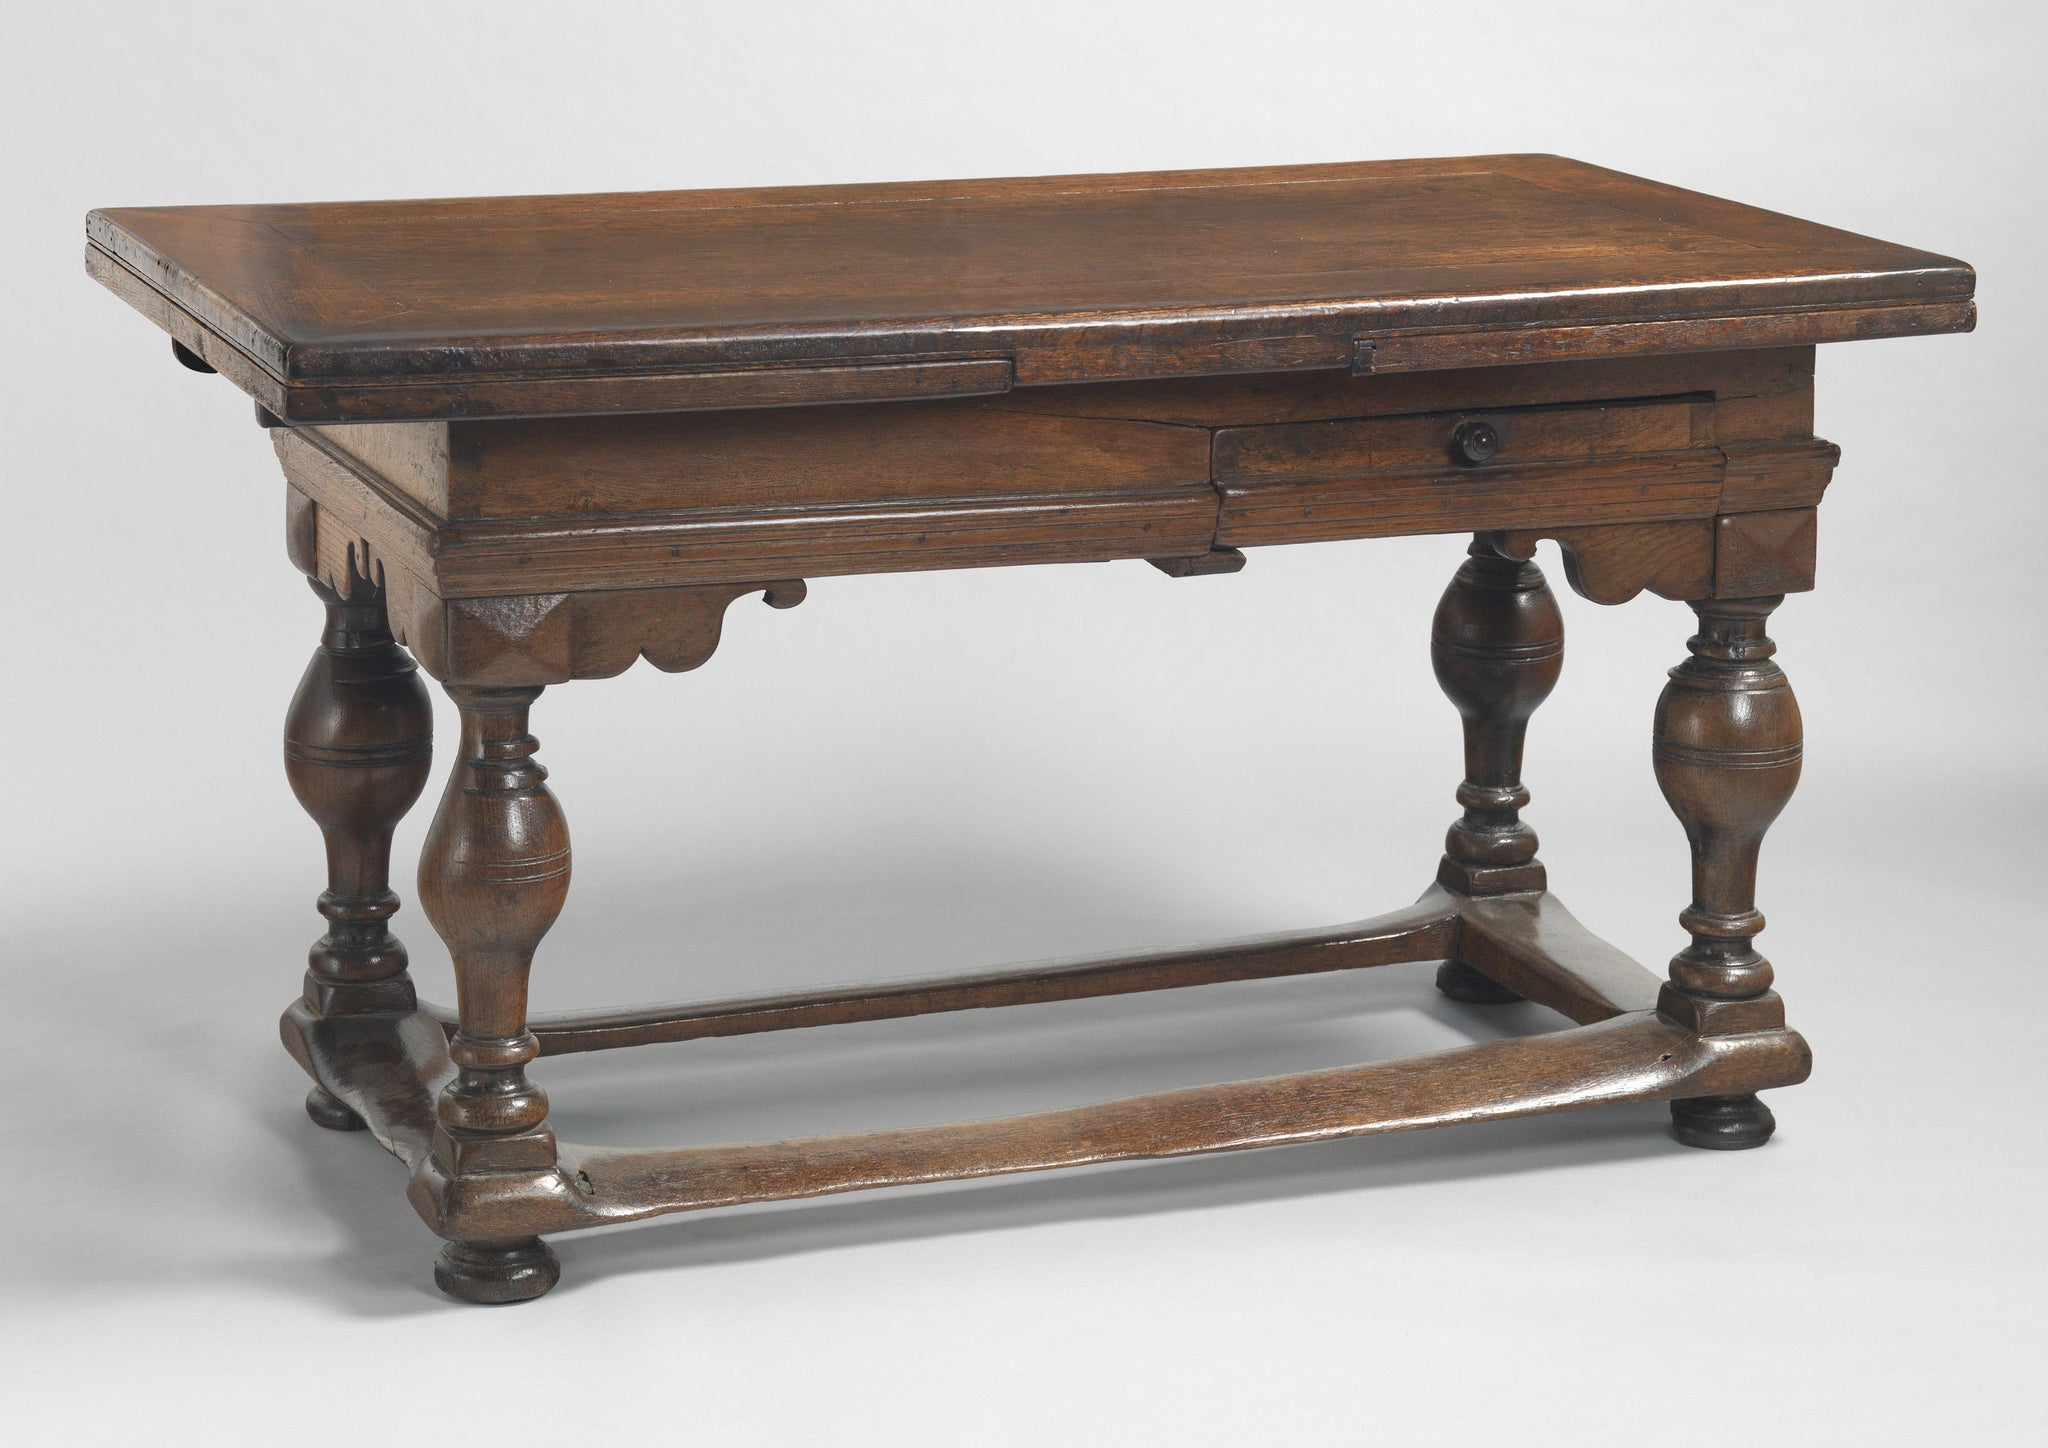 Magnificent Baroque Period Draw Leaf Table